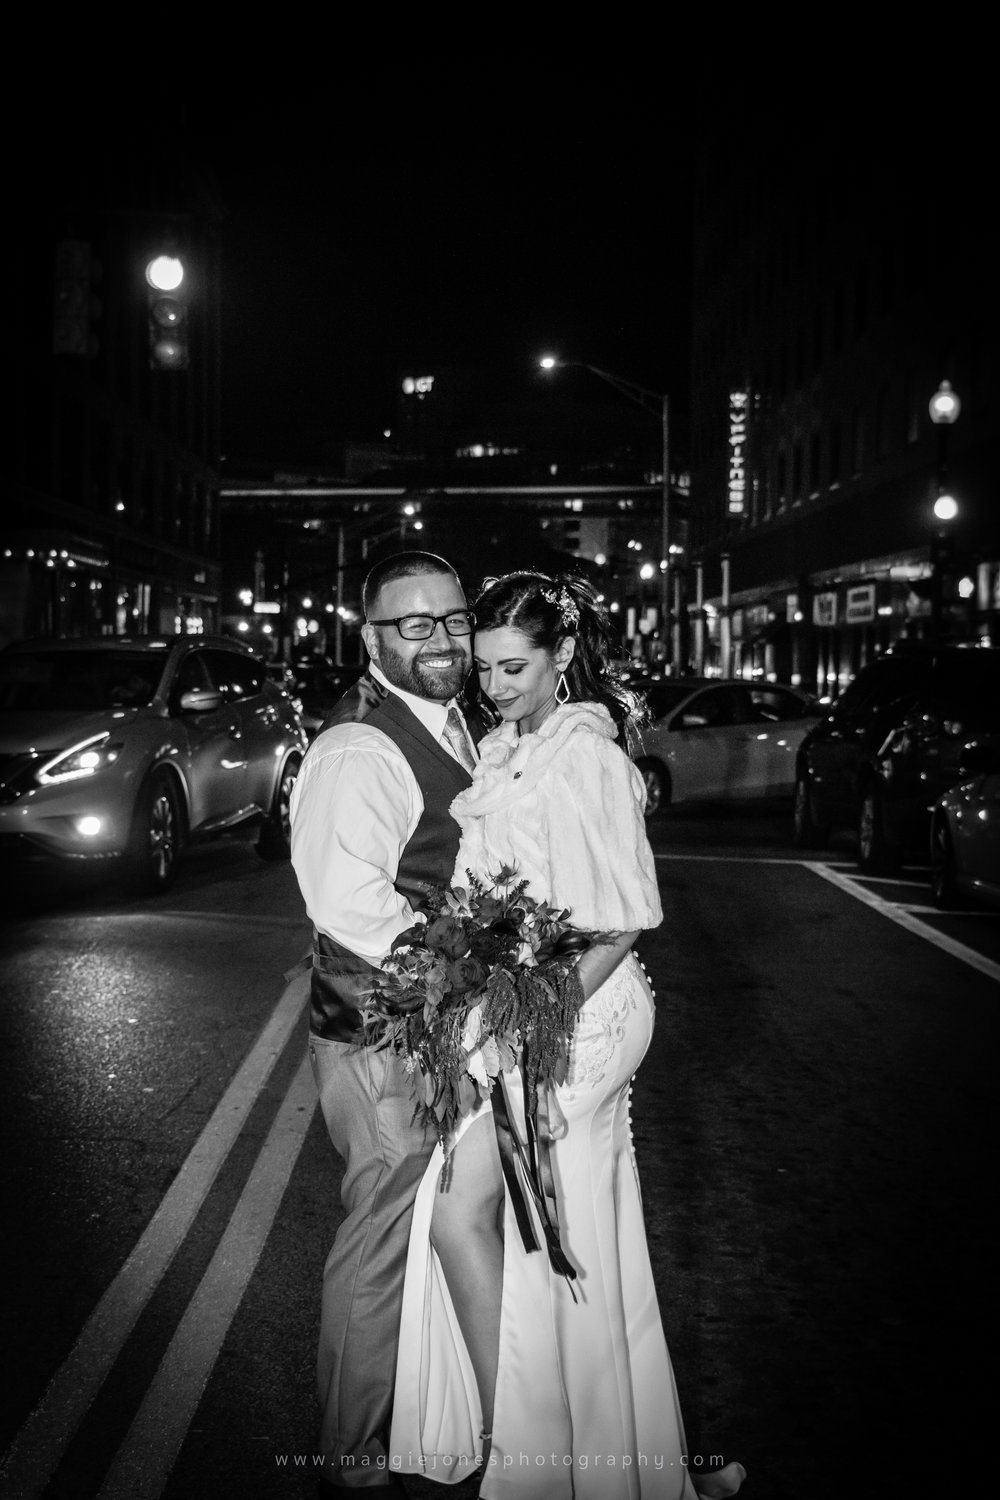 Nelson+VenusWeddingDay_BLOG-1-85.jpg